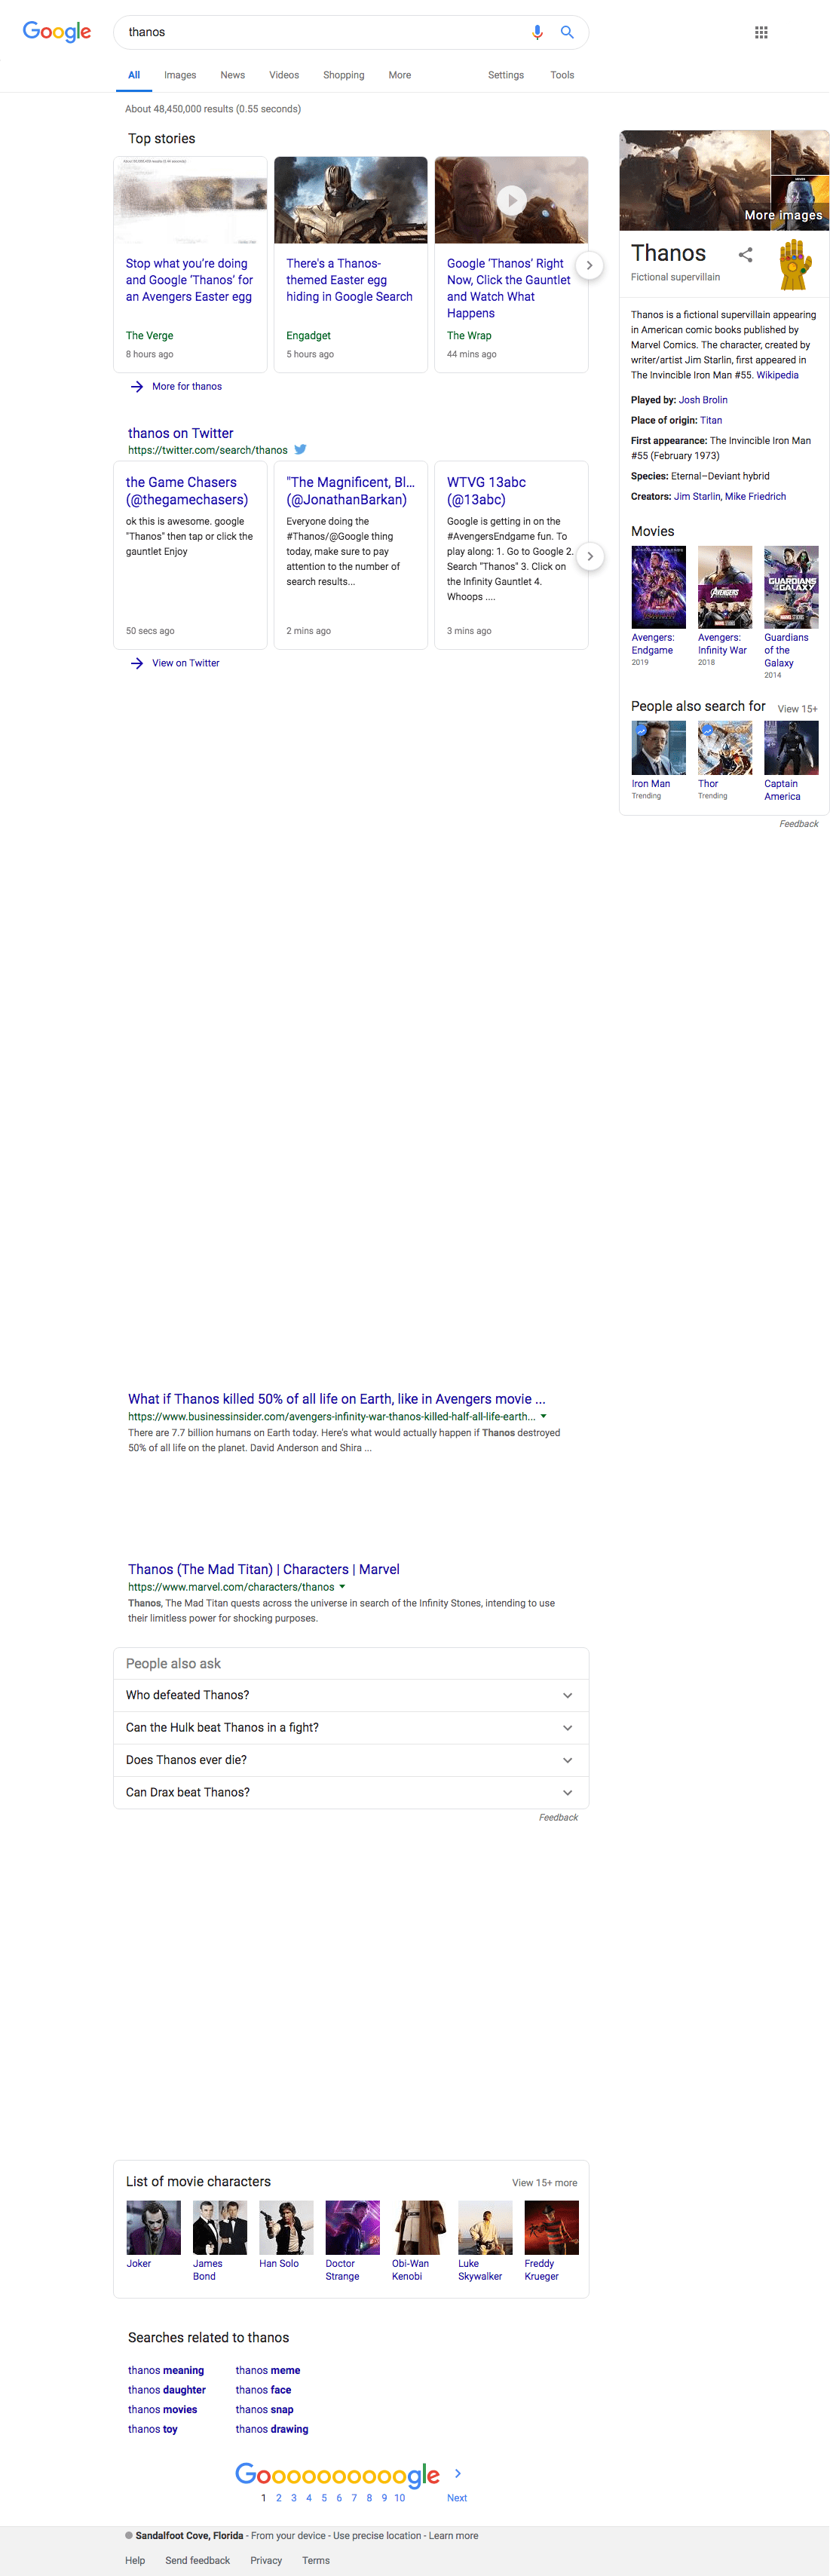 Half of all Google search results